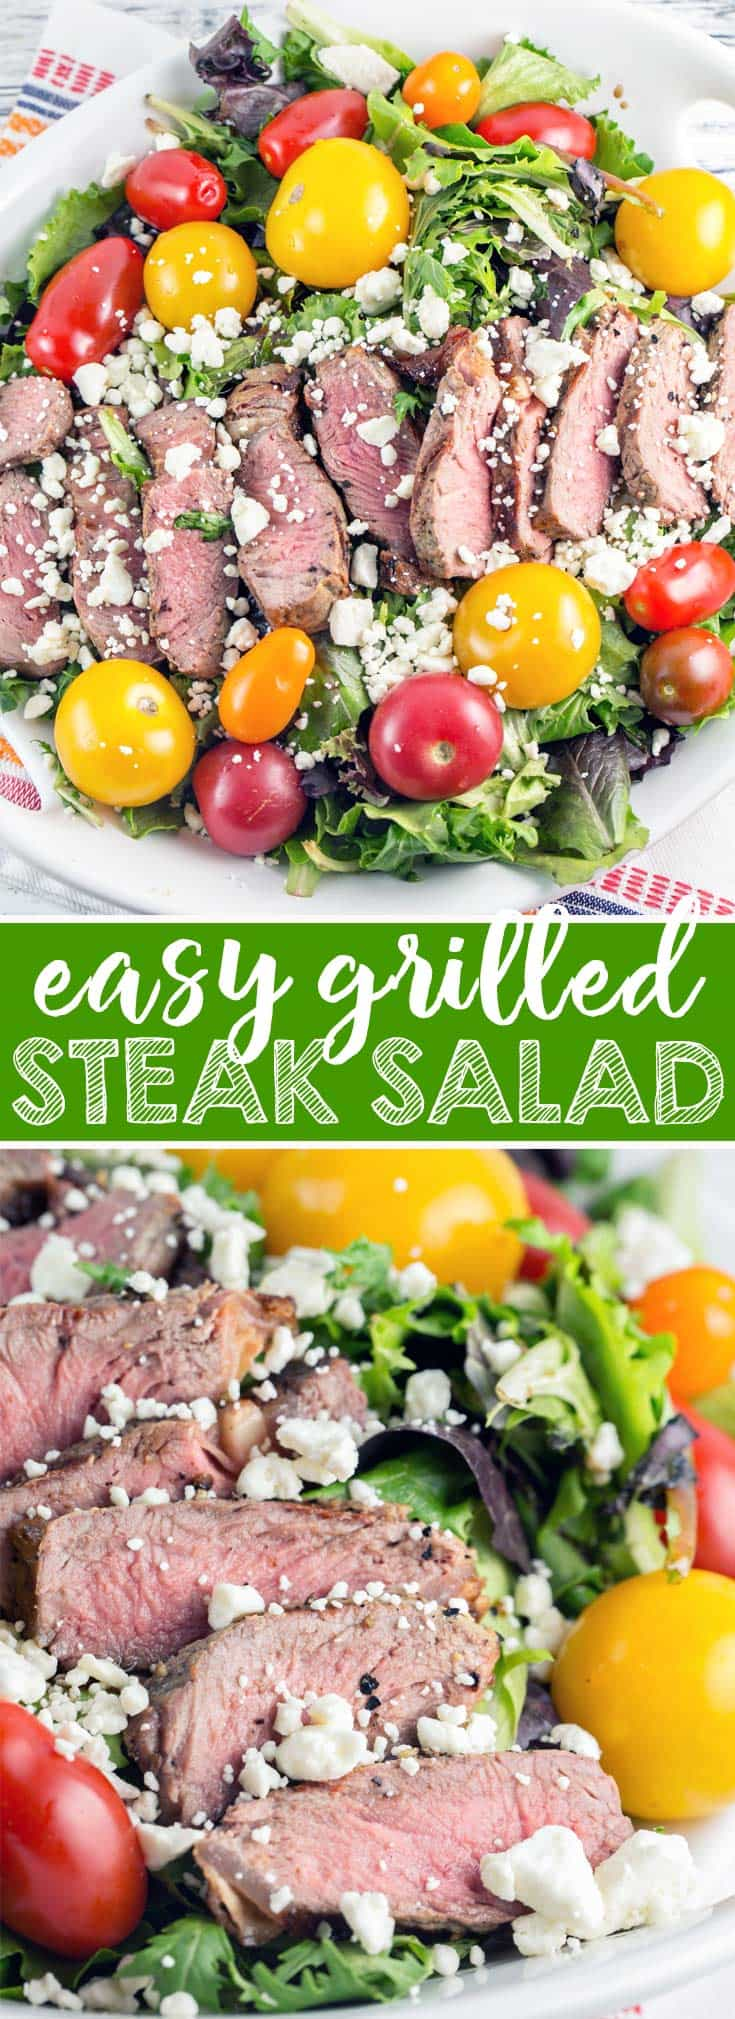 Grilled Steak Salad: grilled steak on a bed of leafy greens with homemade honey mustard vinaigrette - the perfect summer hot weather dinner! {Bunsen Burner Bakery}